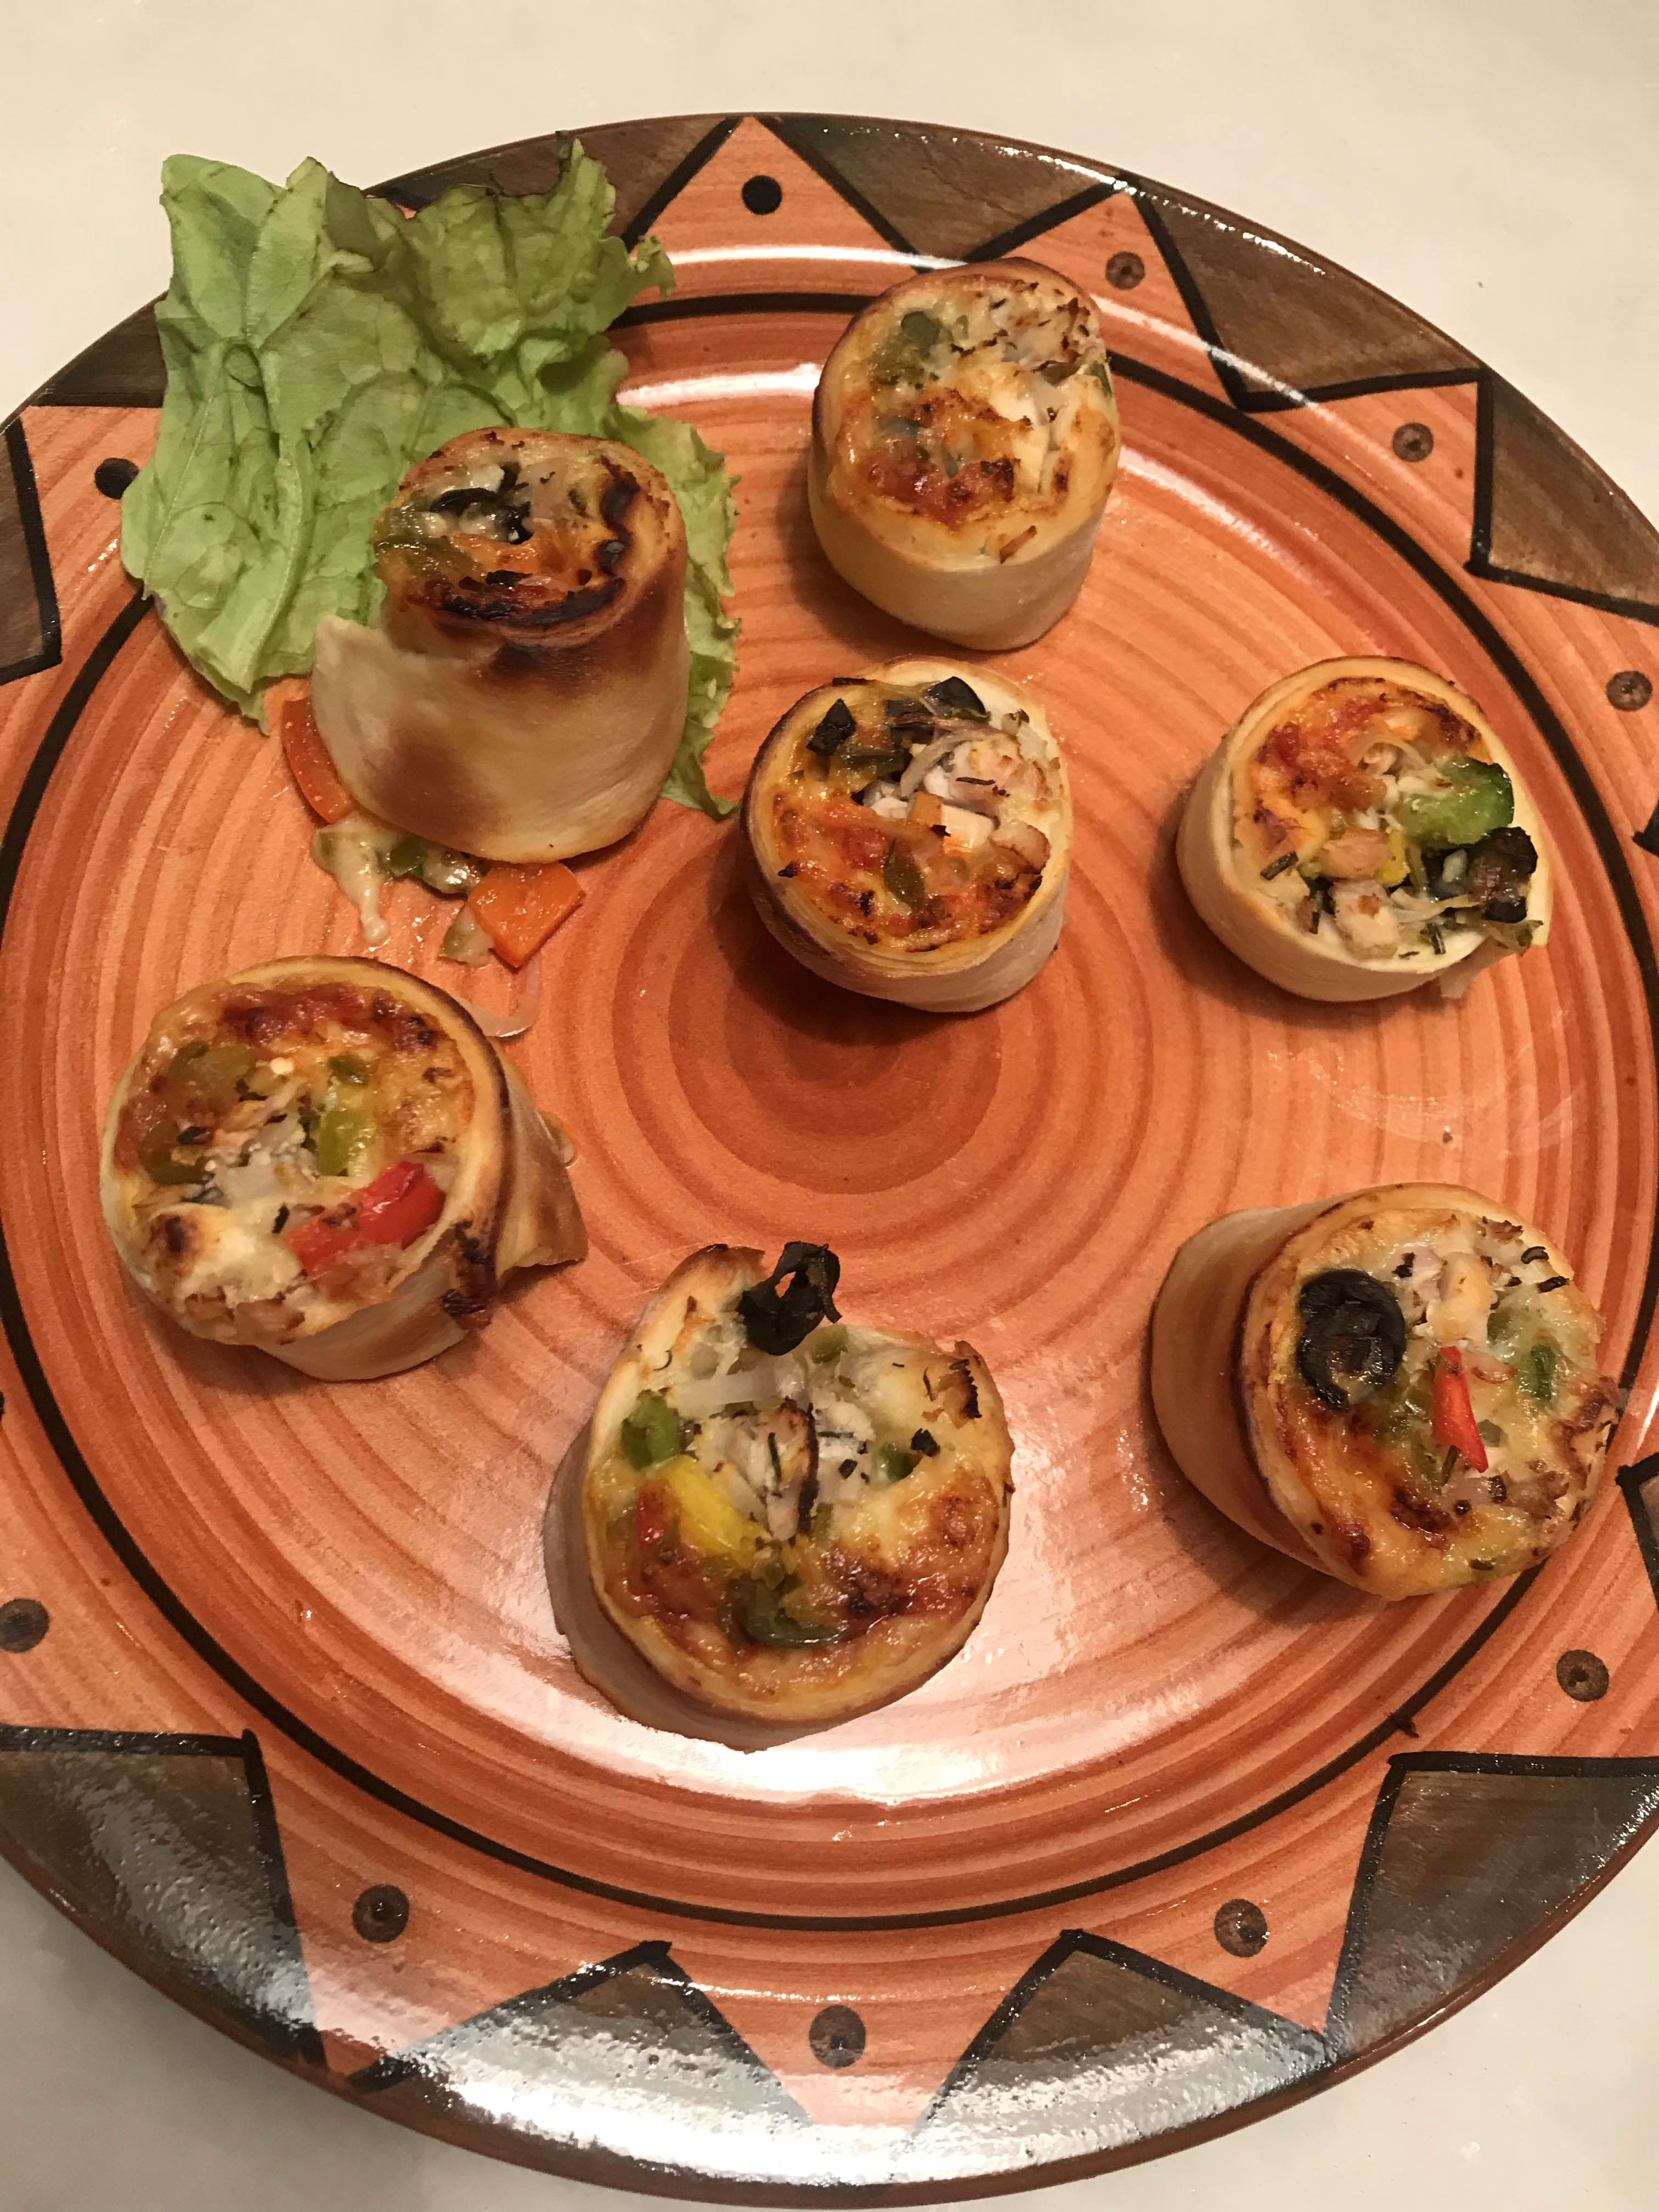 Dish,Food,Cuisine,Ingredient,Stuffed clam,Finger food,Meal,Recipe,appetizer,Hors d'oeuvre